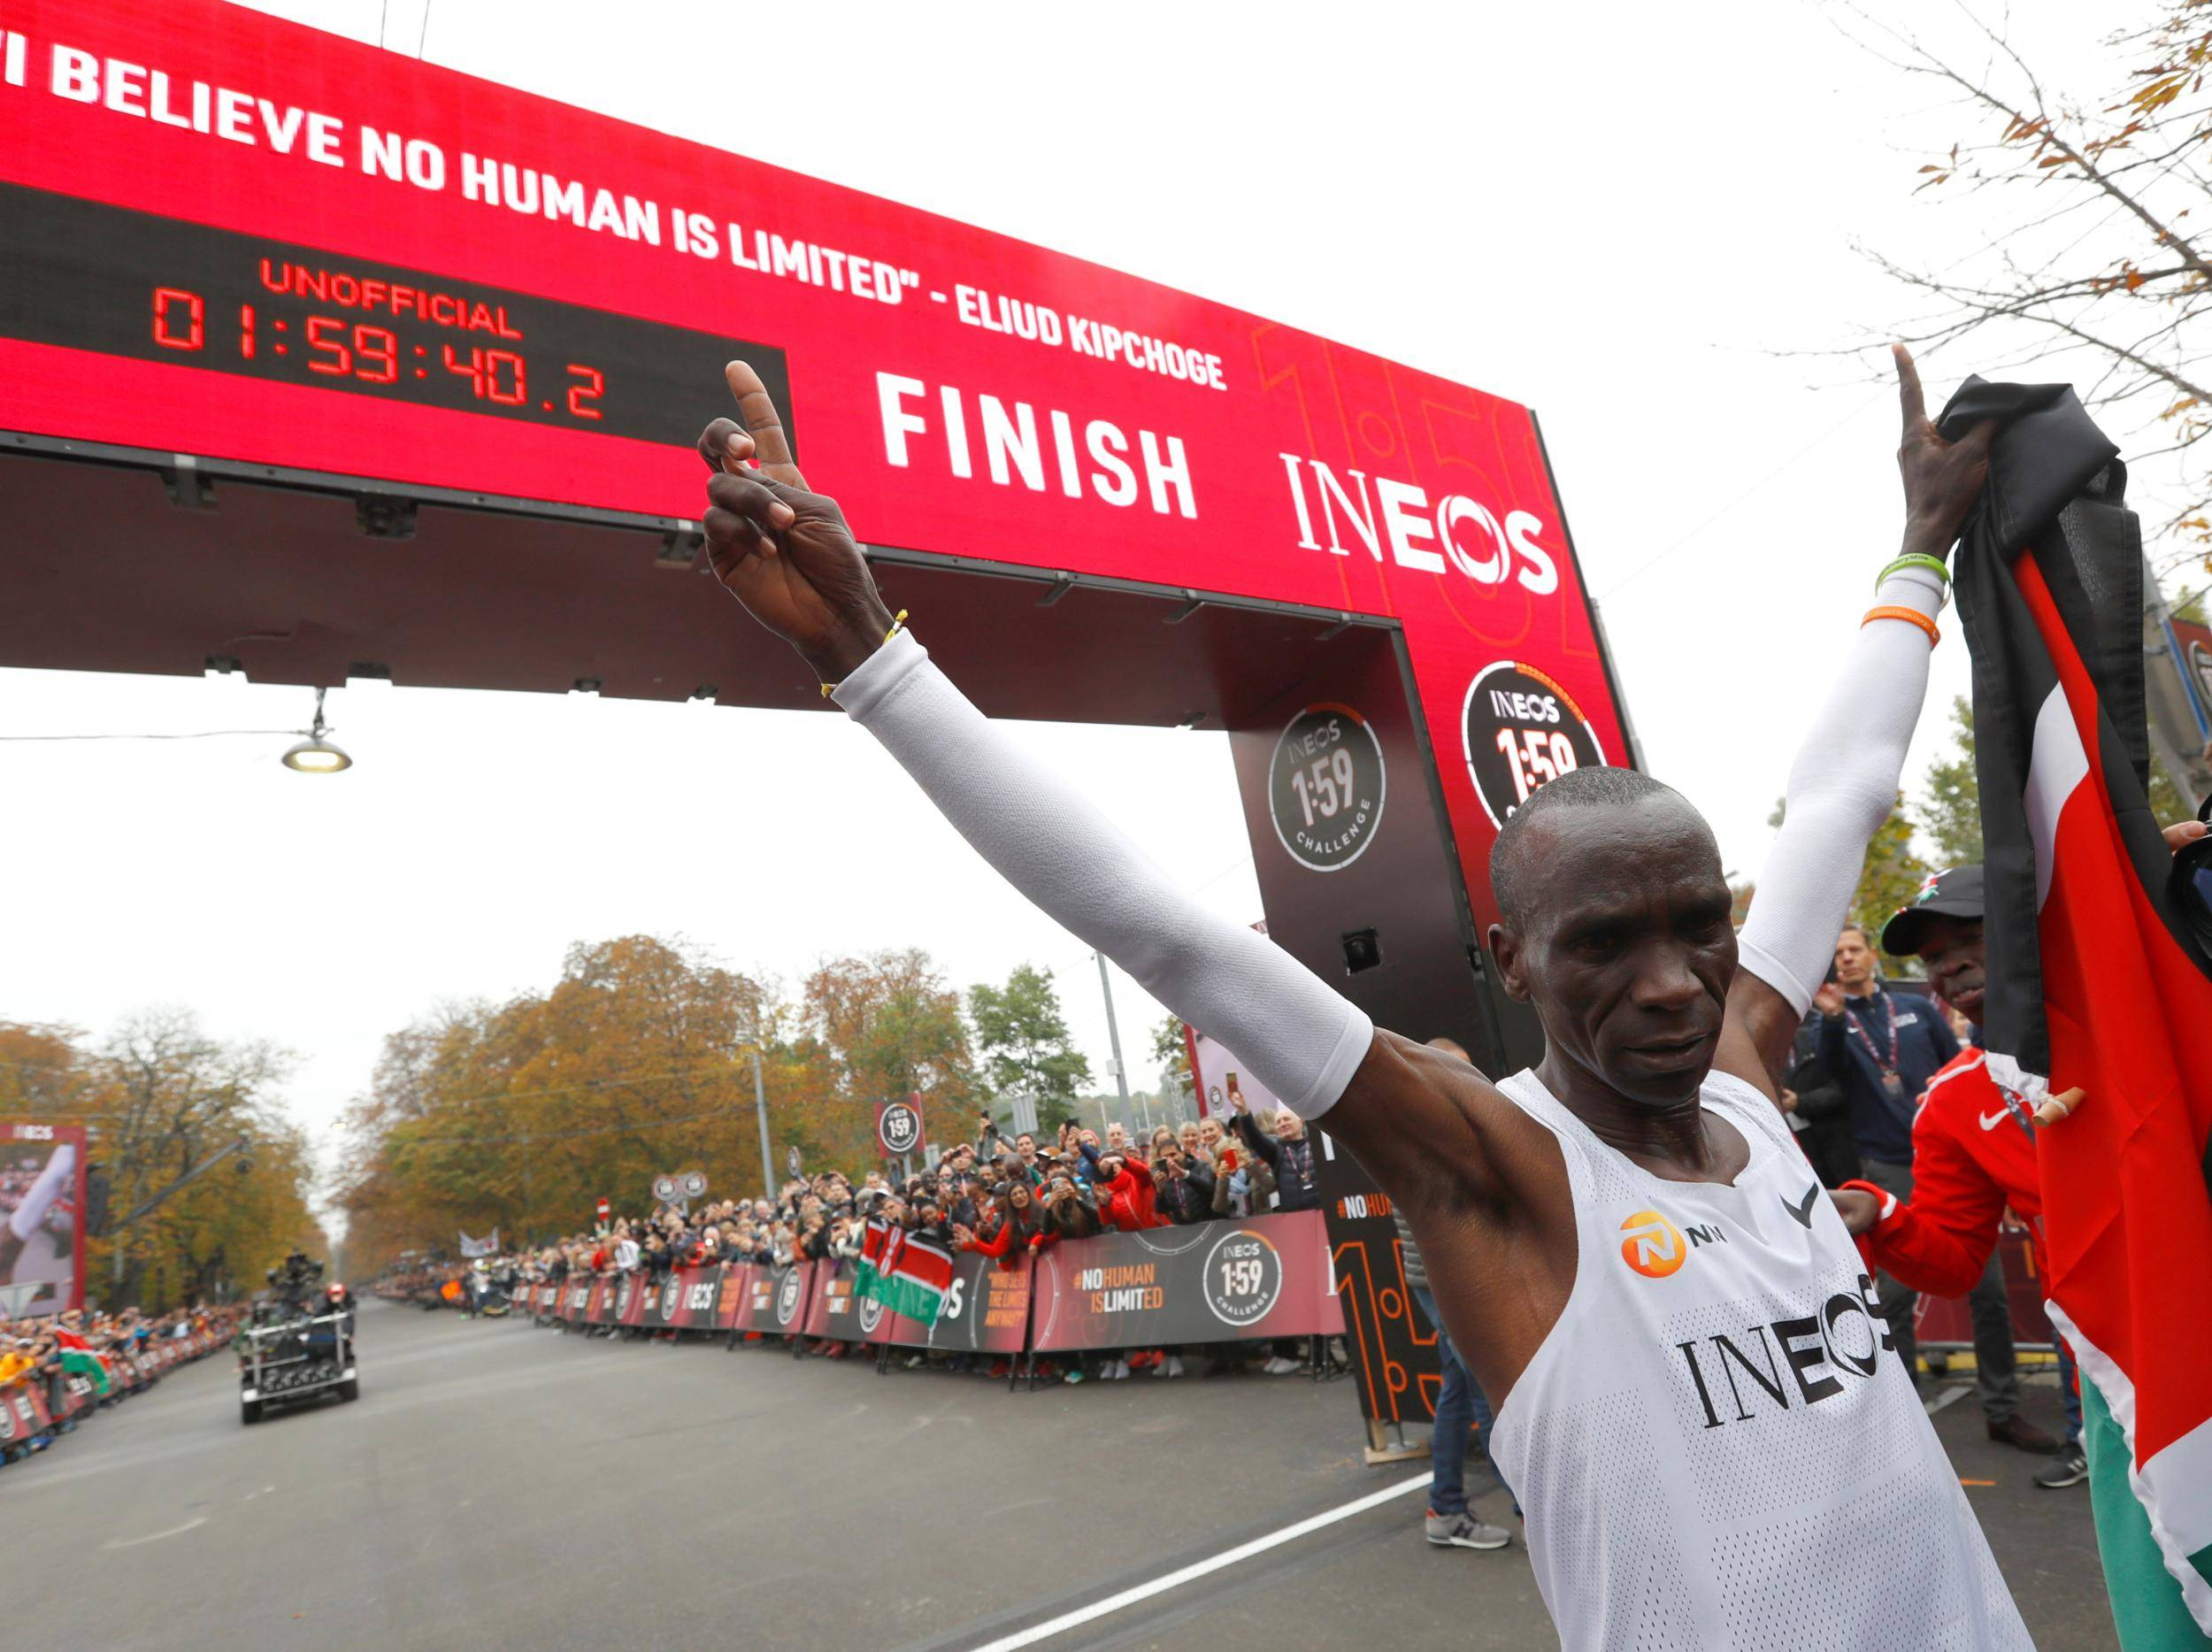 Marathon Man - When is a world record not a world record?